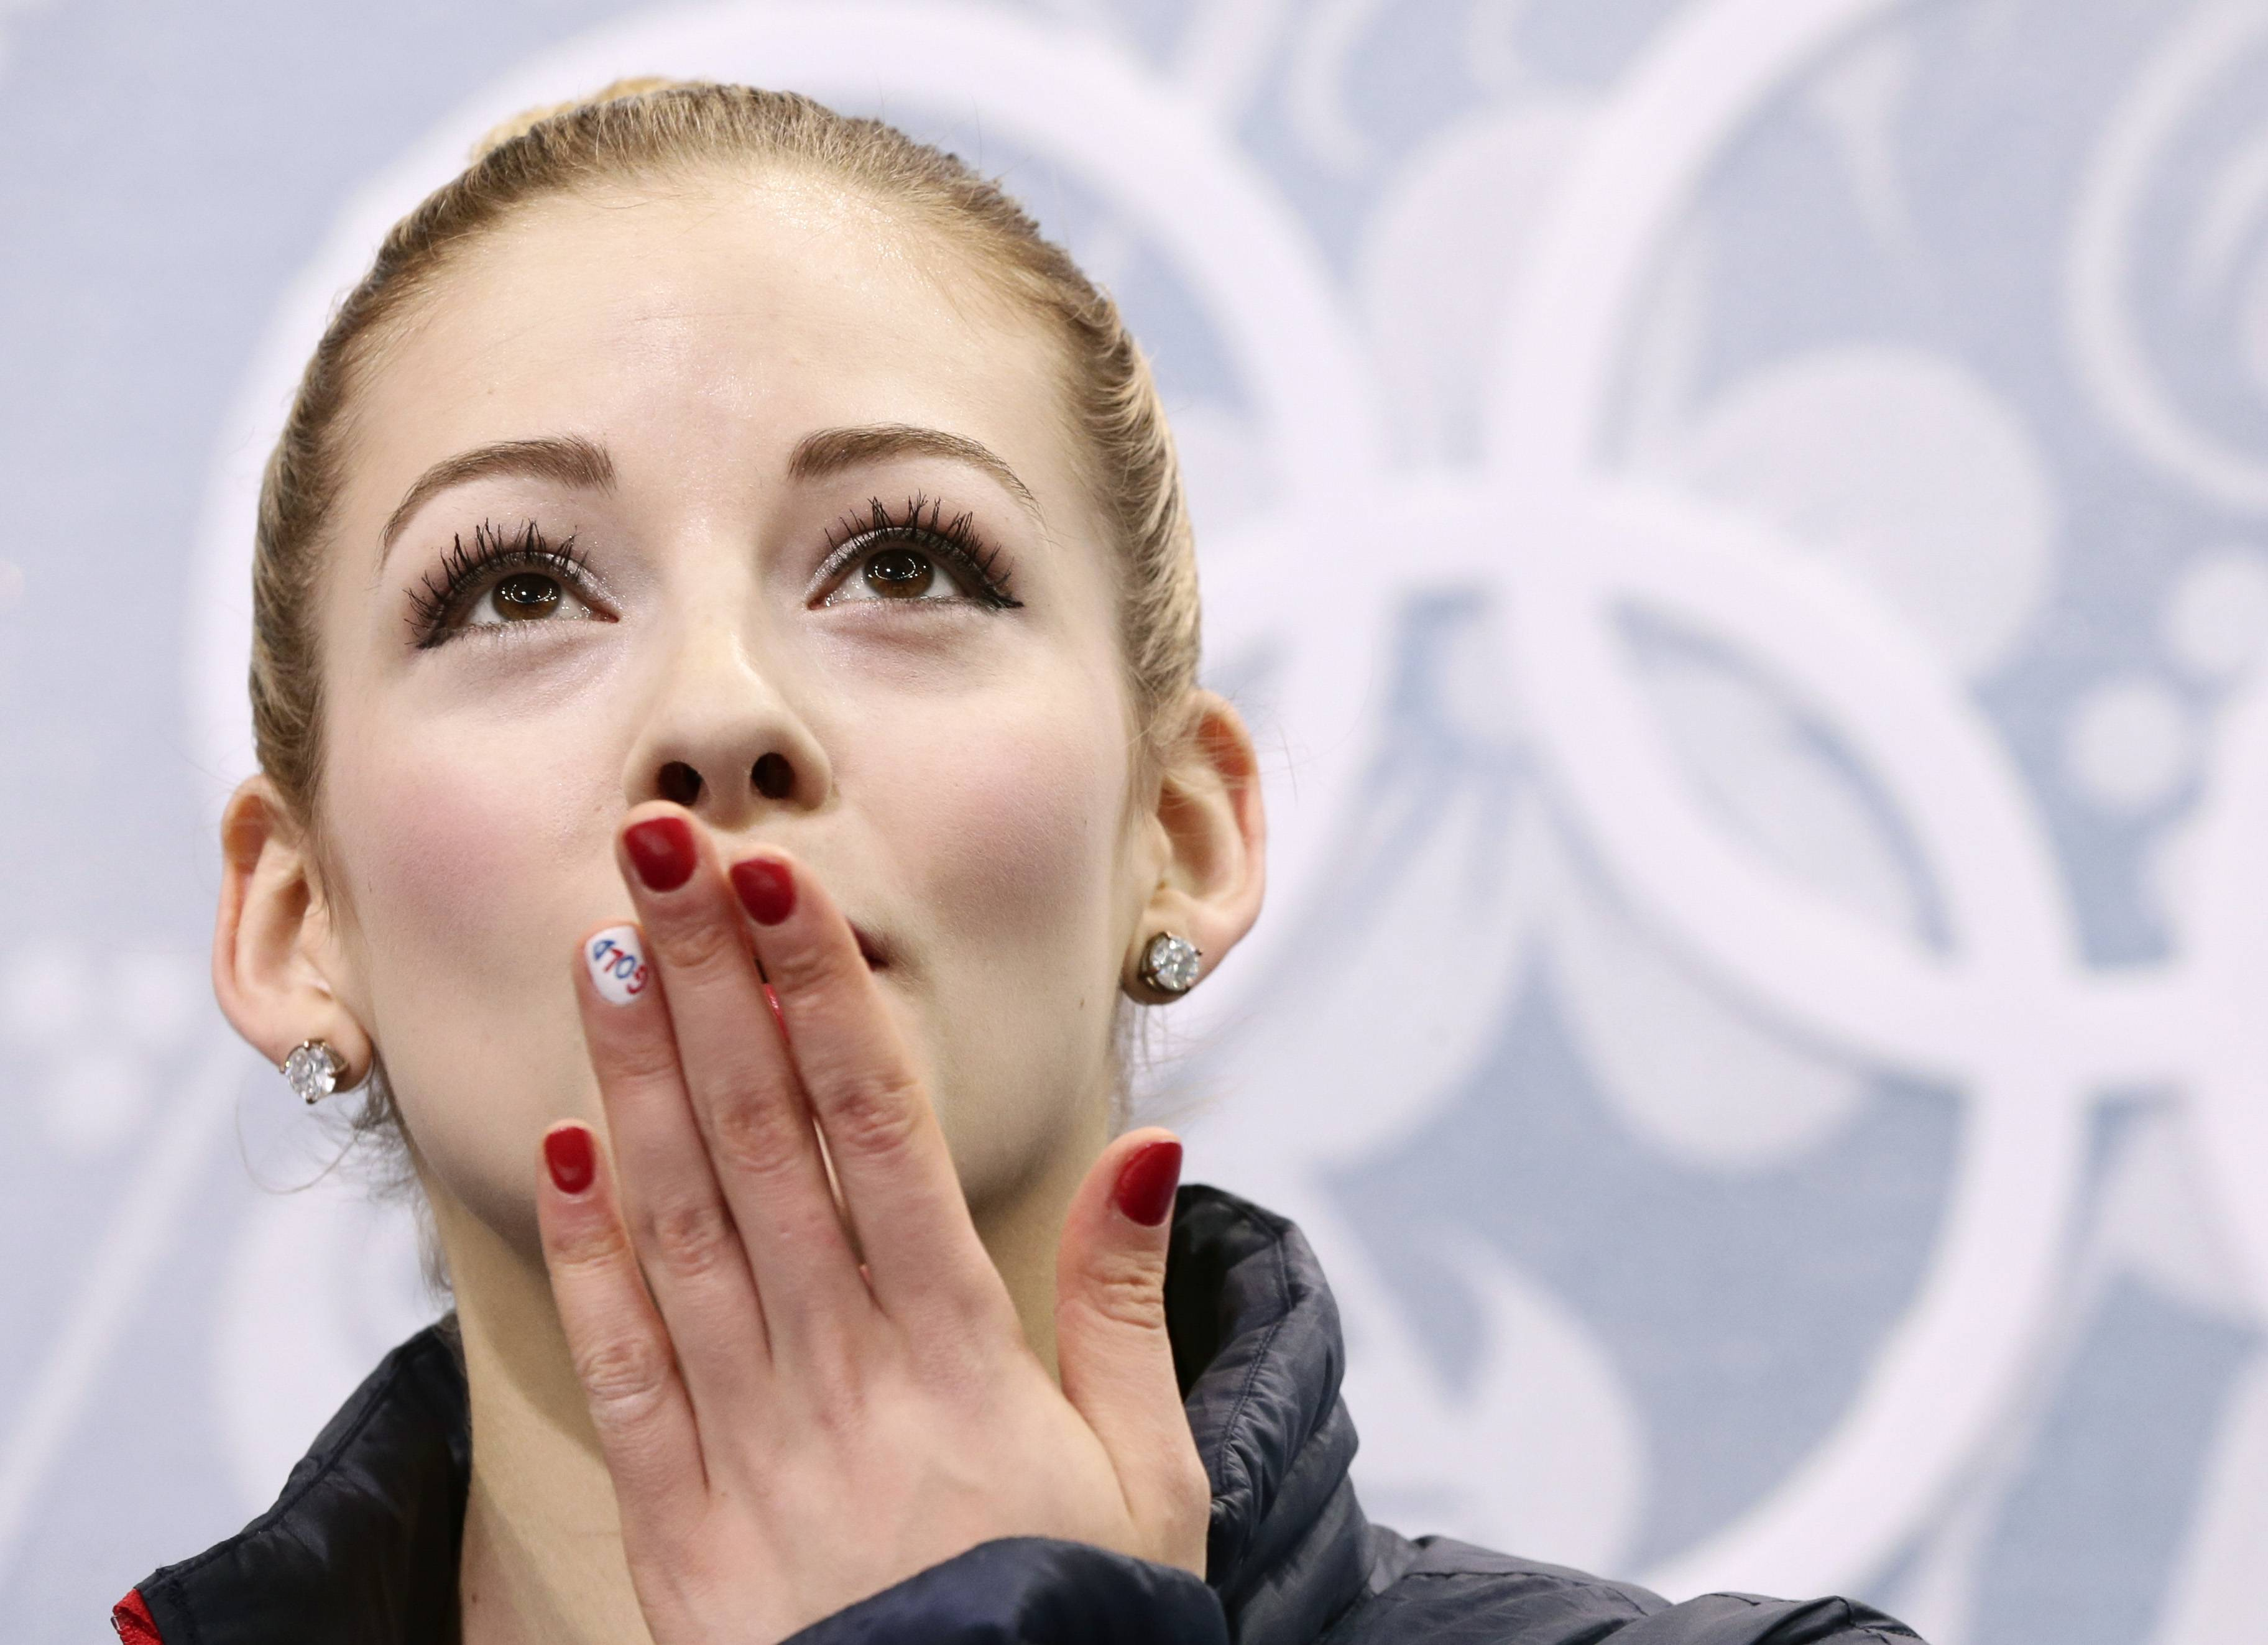 Gracie Gold of the United States blows a kiss to spectators as she waits in the results area after completing her routine in the women's short program figure skating competition at the Iceberg Skating Palace during the 2014 Winter Olympics, Wednesday, Feb. 19, 2014, in Sochi, Russia.